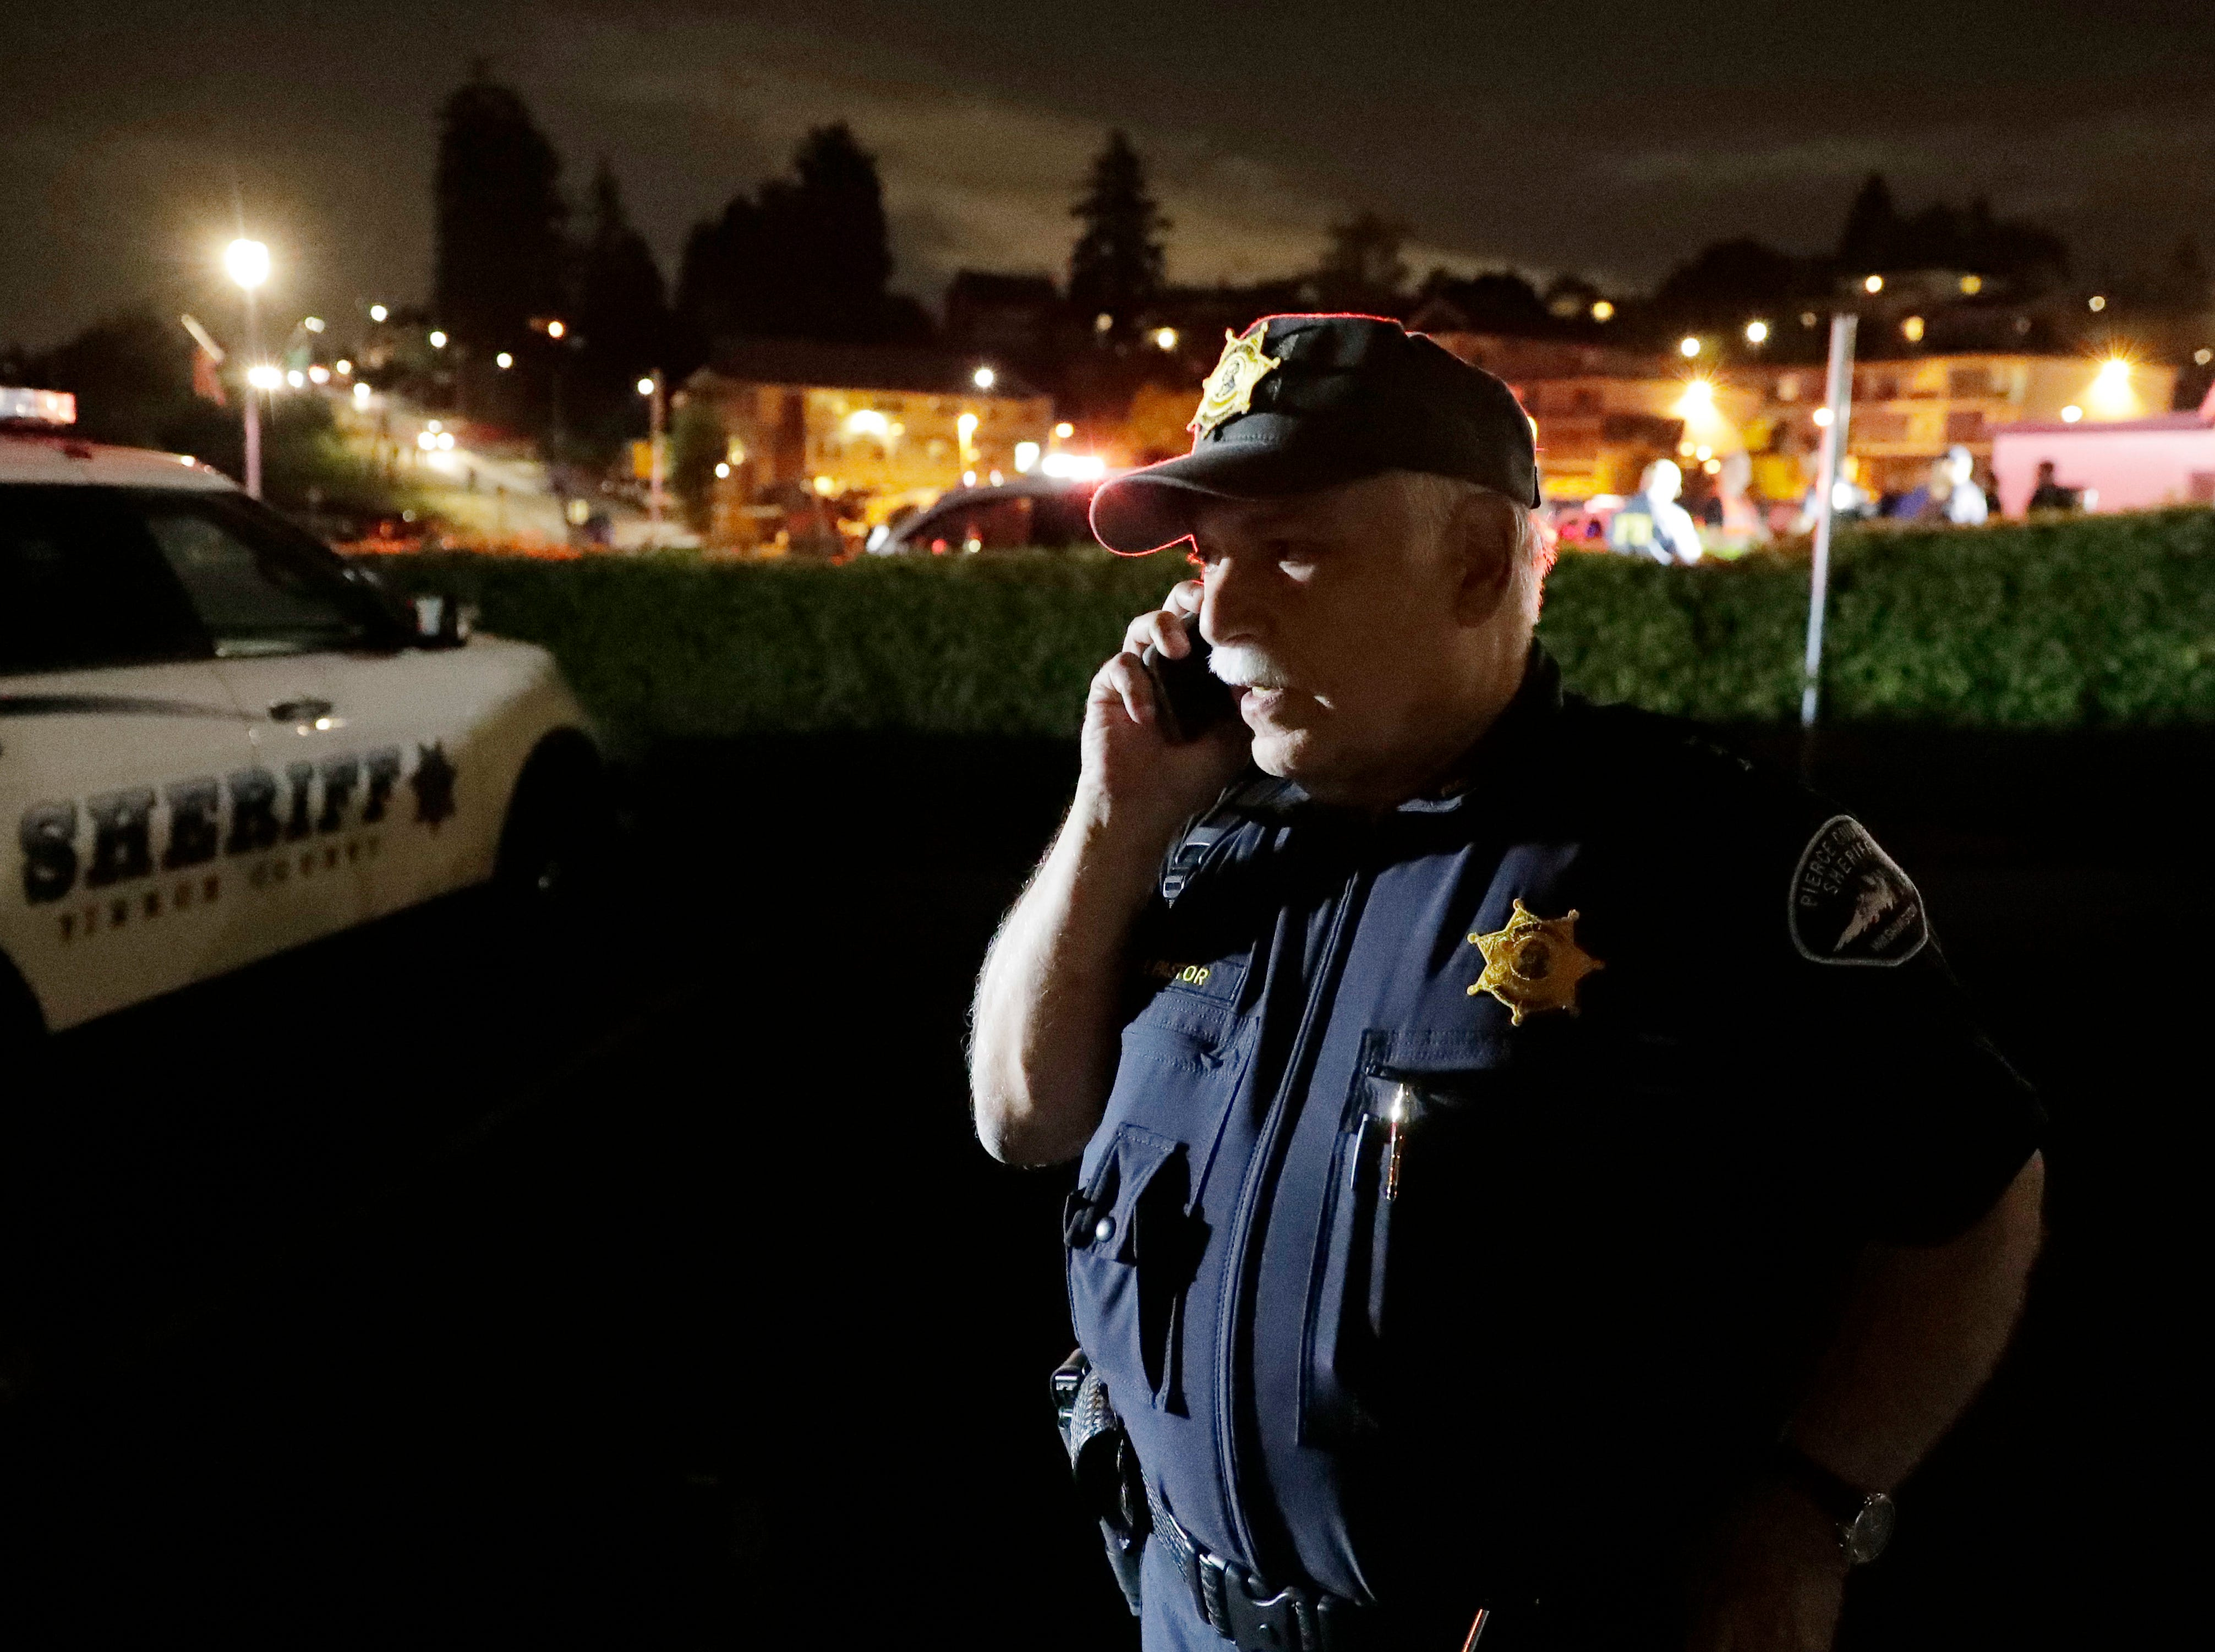 Pierce County Sheriff Paul Pastor talks on his phone at a staging area, Friday, Aug. 10, 2018, at the ferry terminal in Steilacoom, Wash., near where a Coast Guard spokeswoman said the agency was responding to a report of a smoke plume and possible plane crash. Earlier in the evening, officials at Seattle-Tacoma International Airport said an Alaska Airlines plane had been stolen and later crashed.